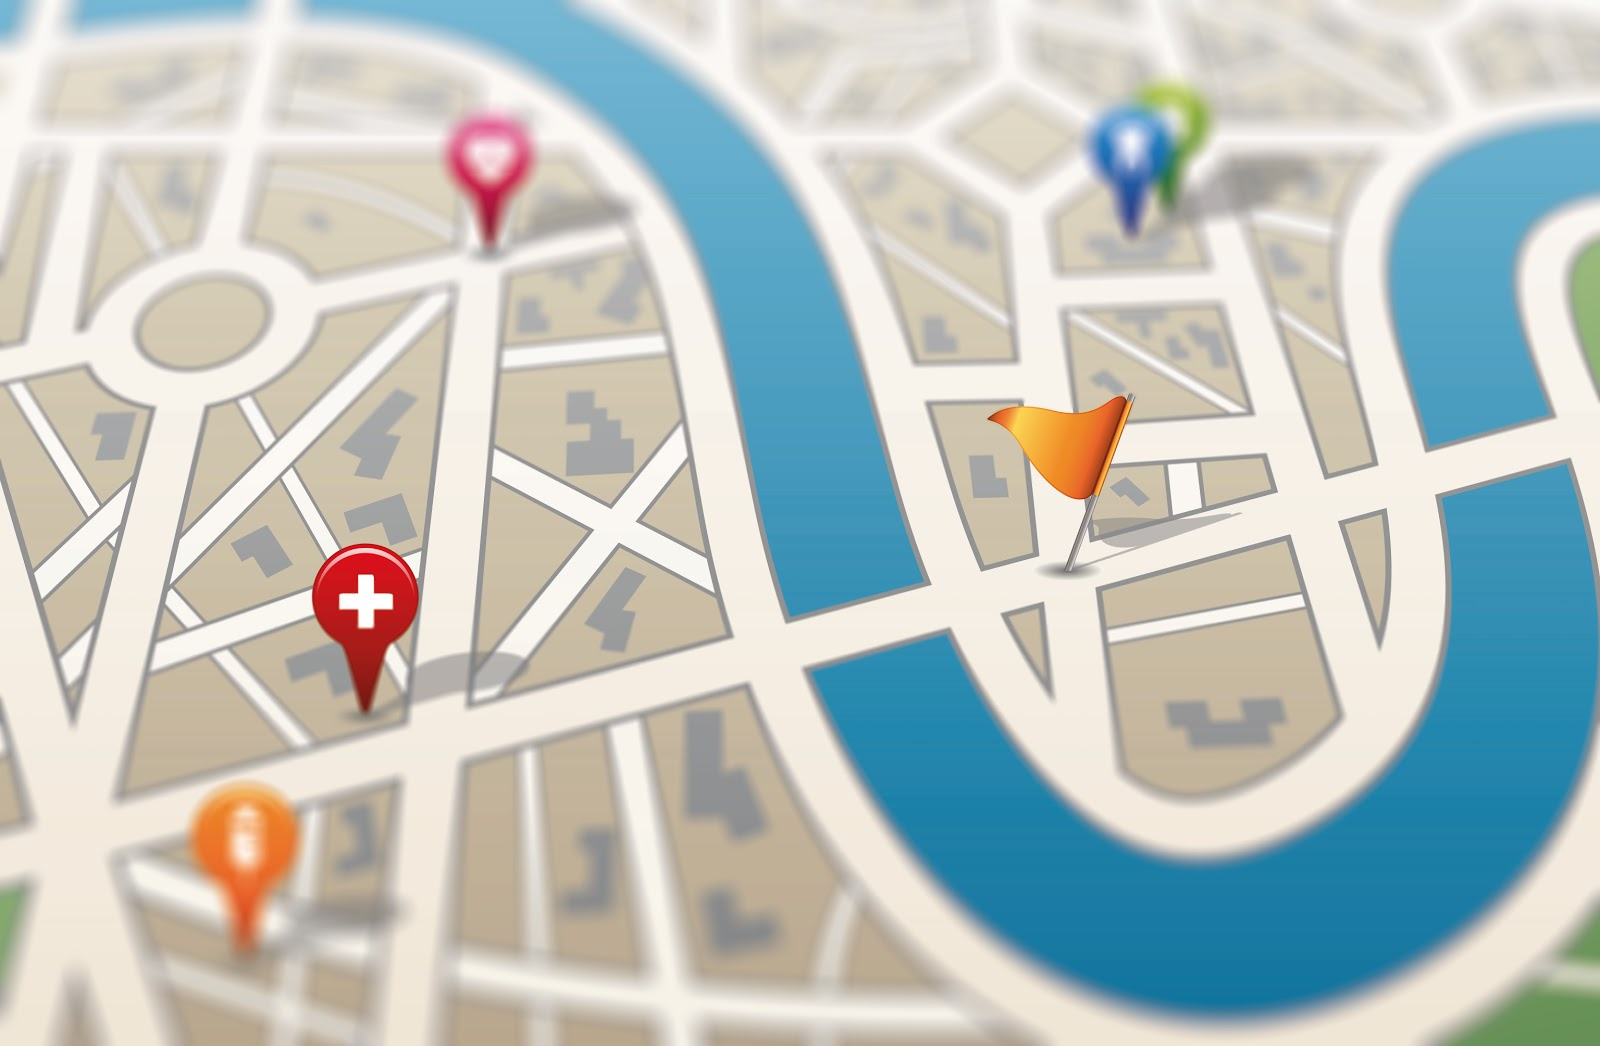 How to track the GPS location of the cell phone for free using FoneTracker